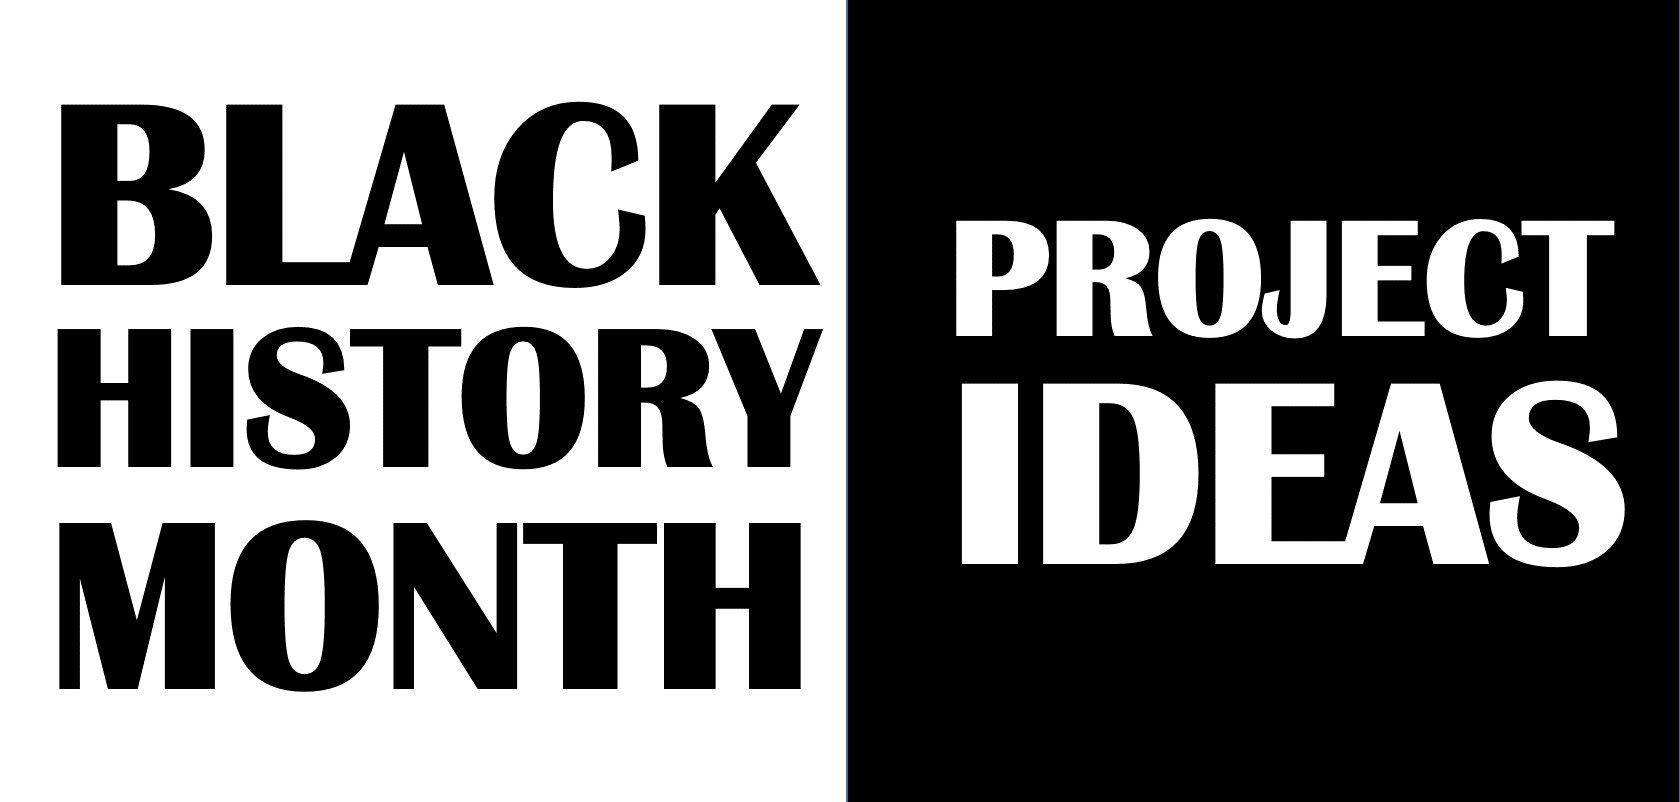 10 Fantastic Ideas For Black History Month black history month project ideas youtube 2021